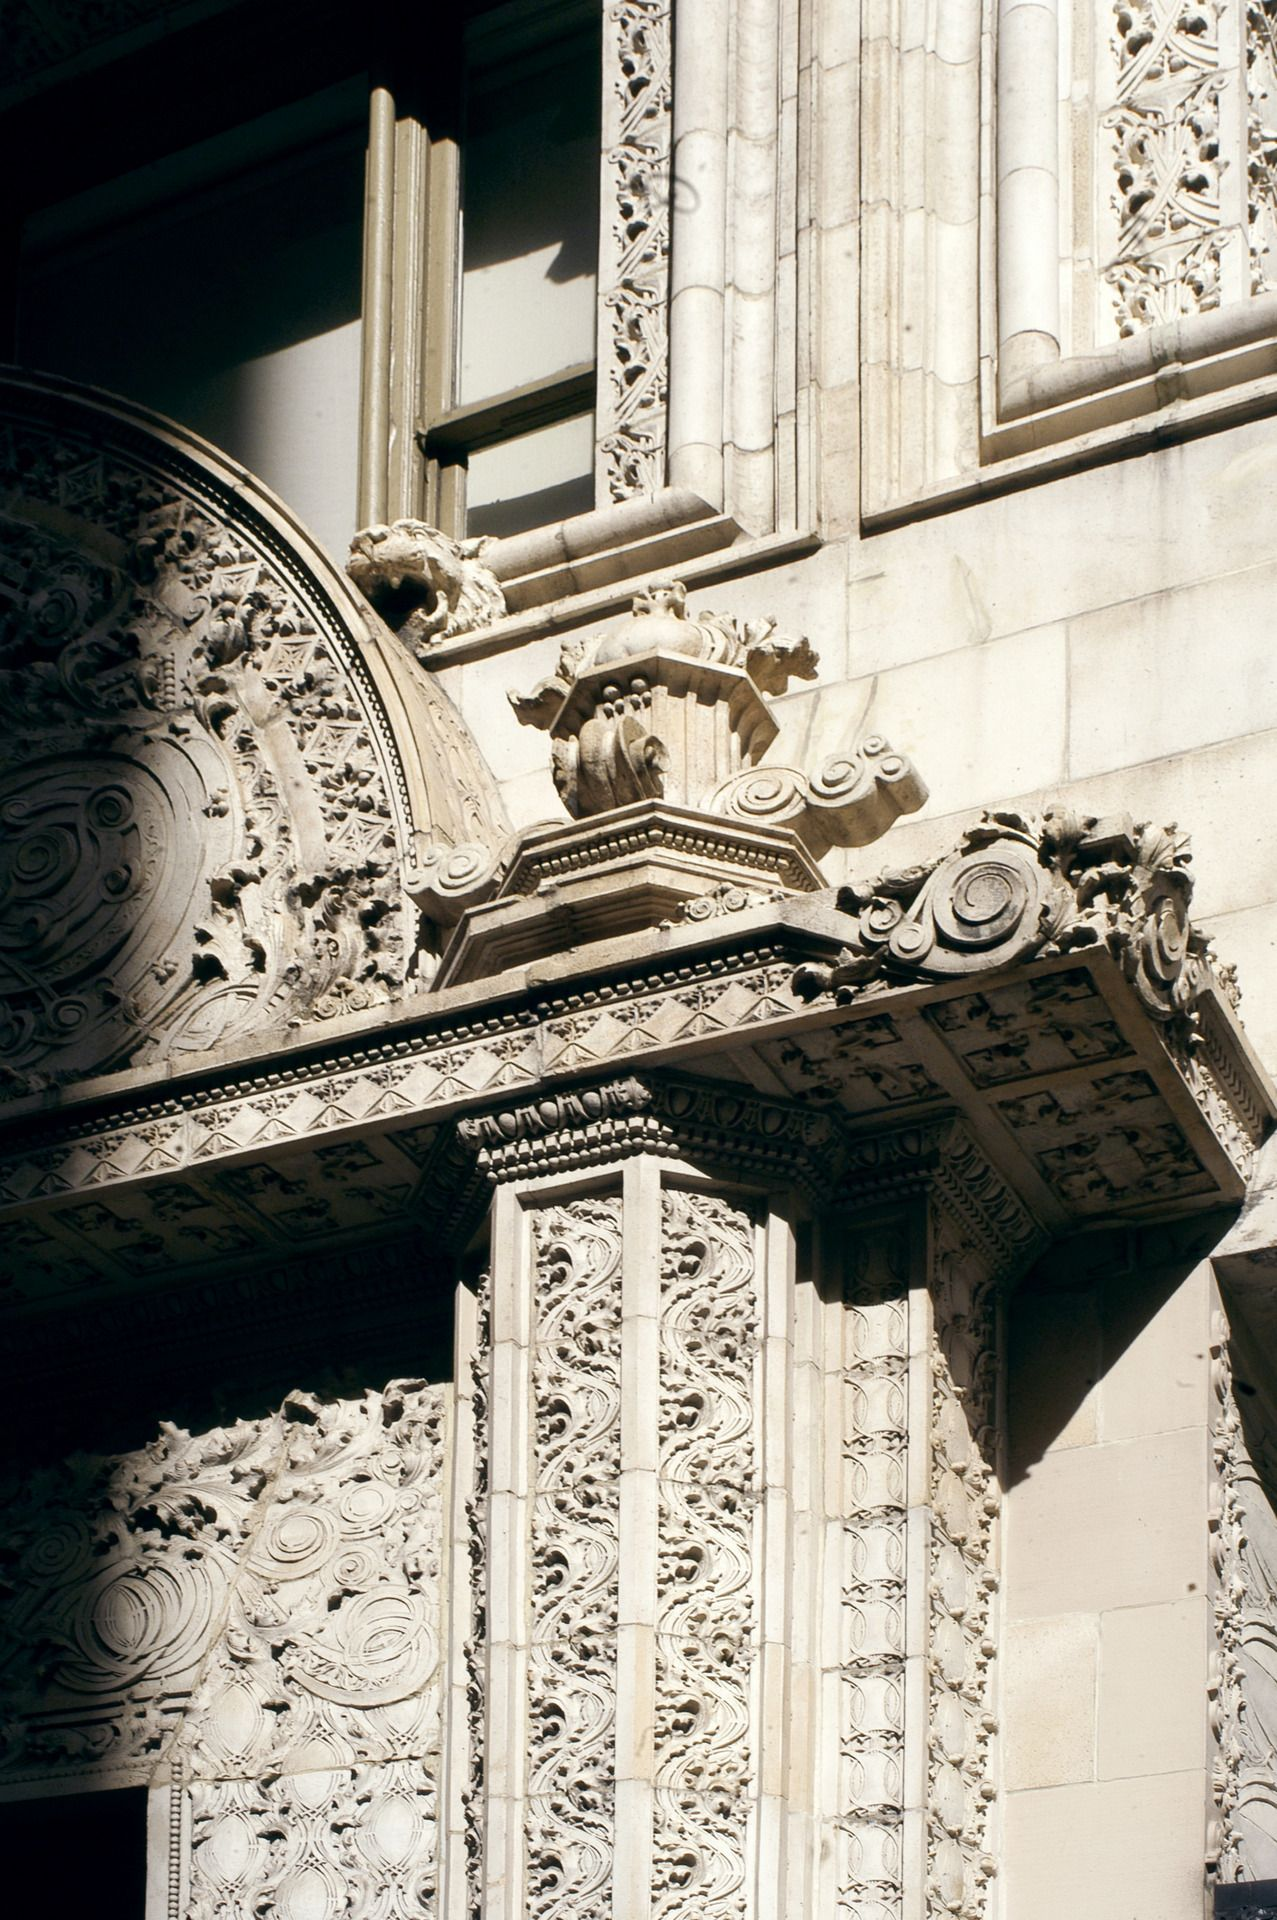 (81) louis sullivan | Tumblr